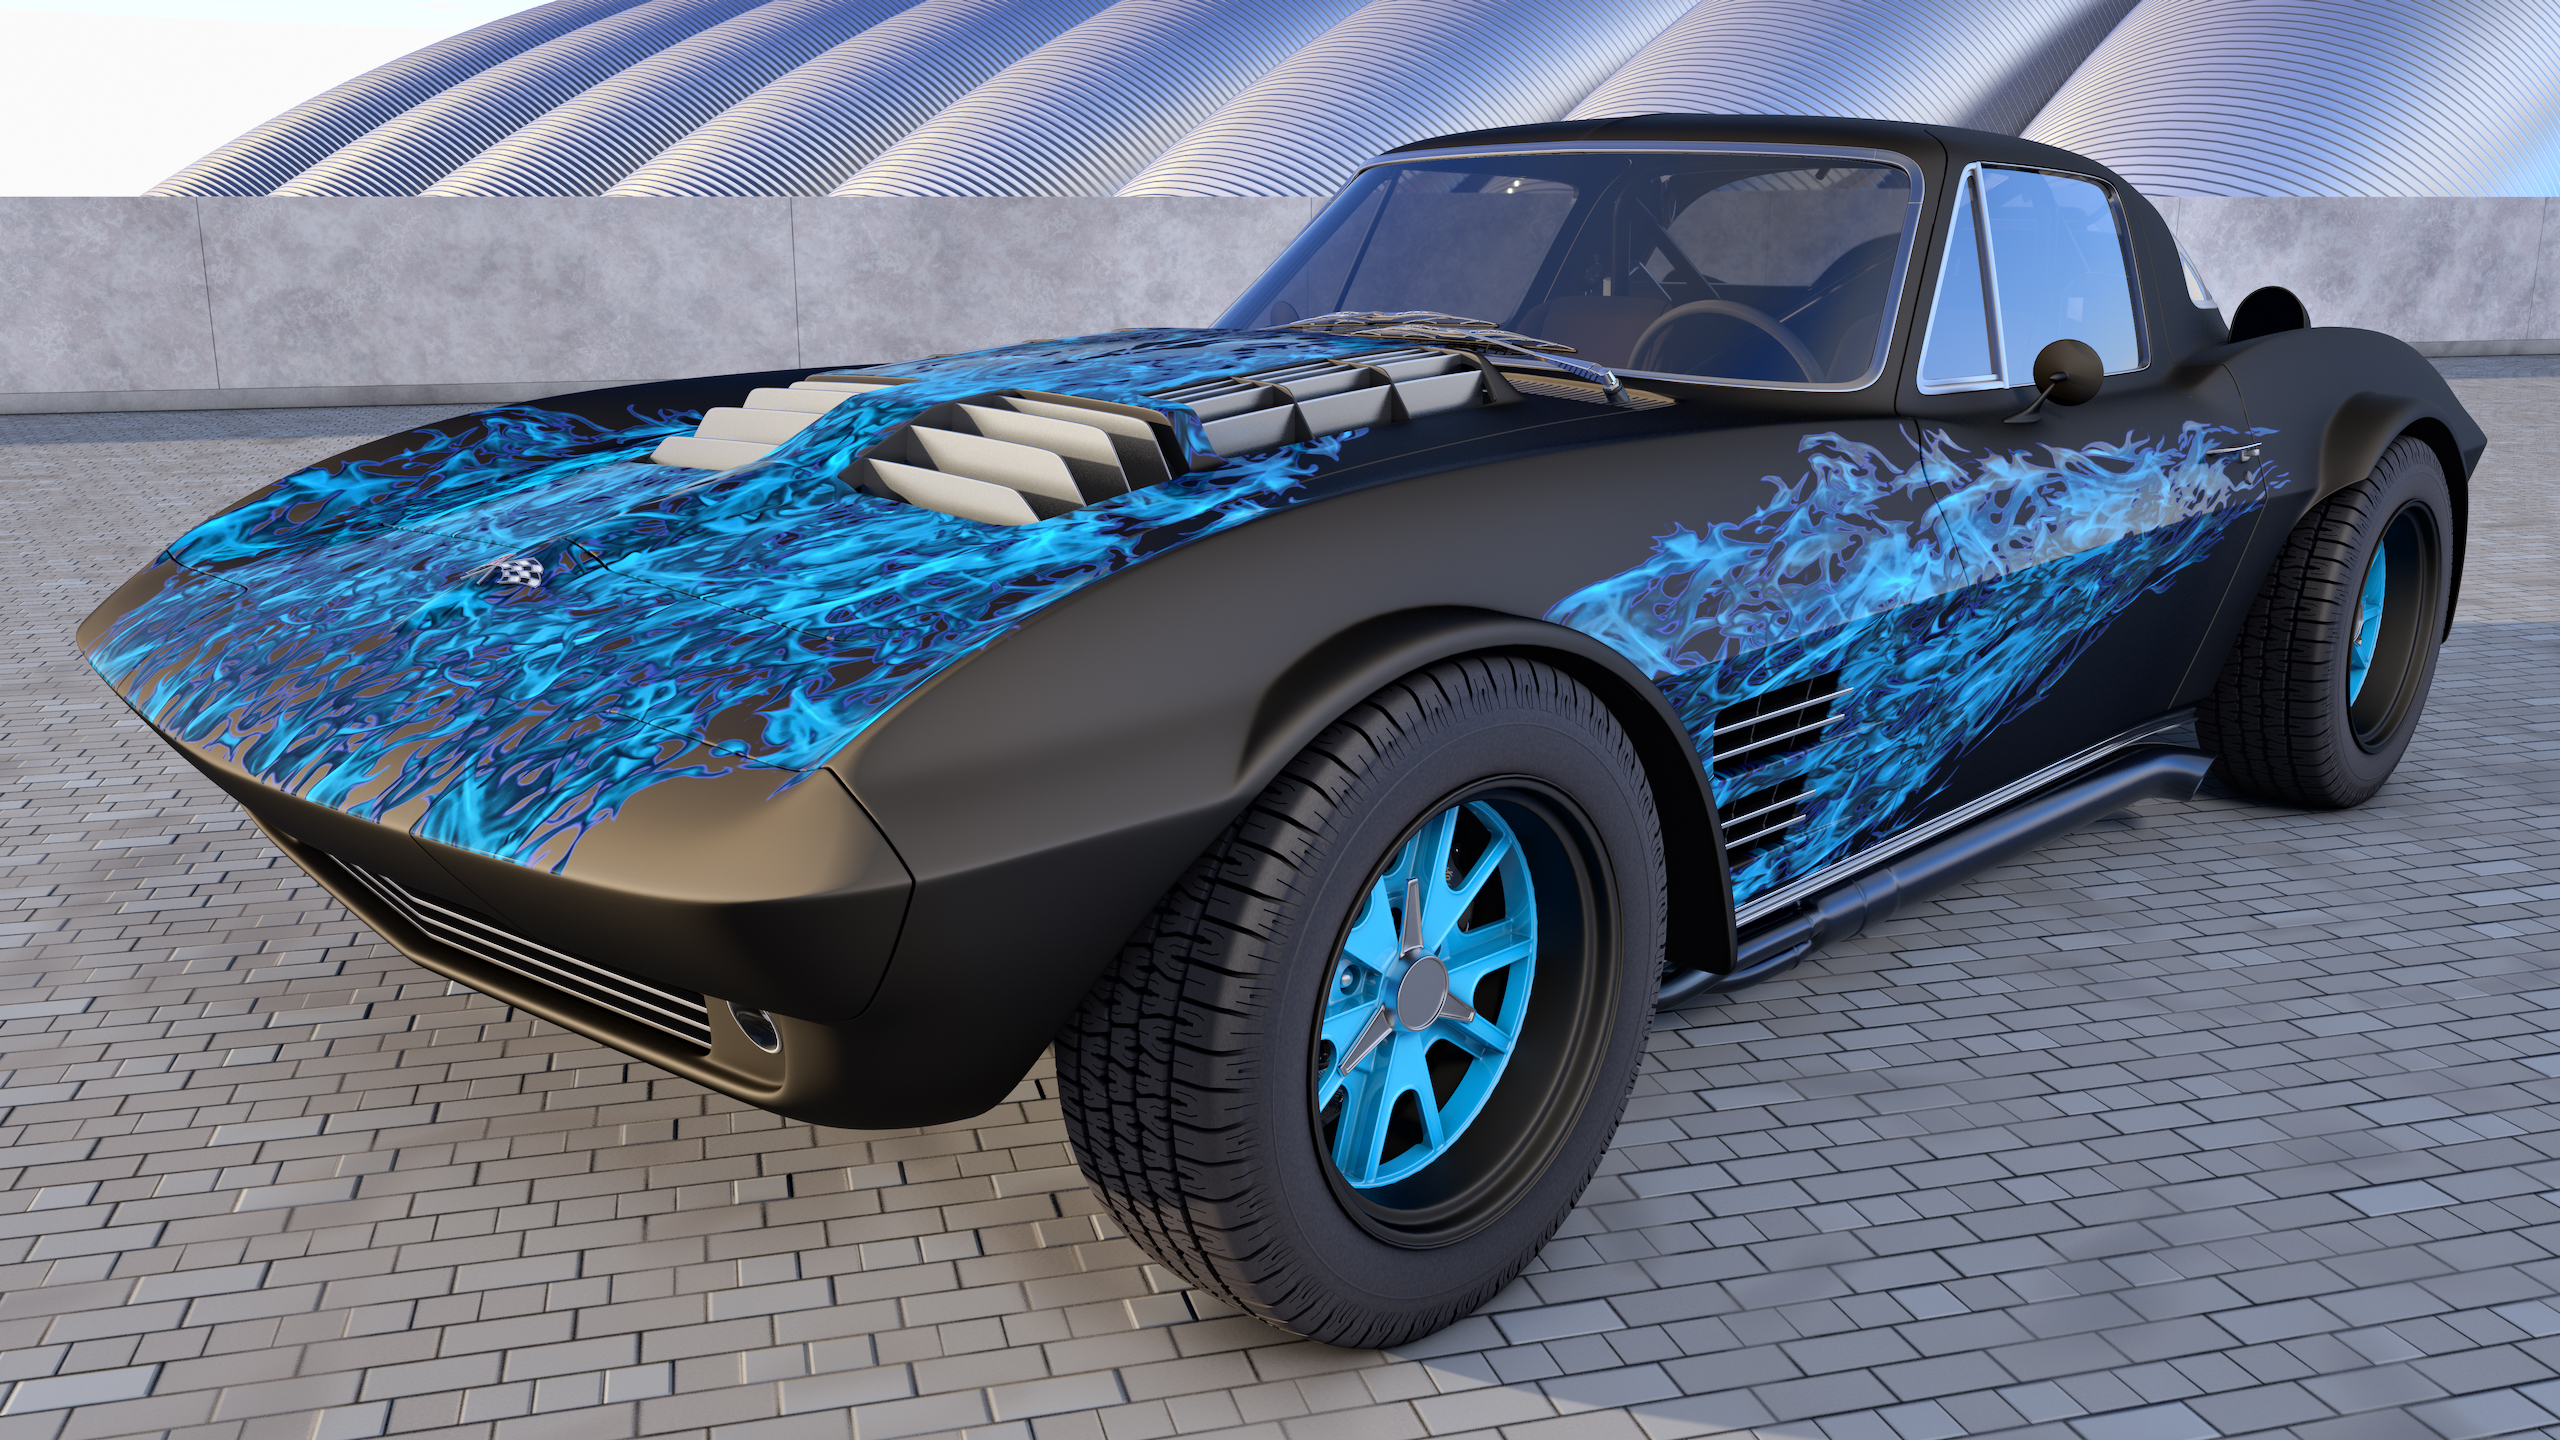 1964 Chevrolet Corvette Grand Sport by SamCurry on deviantART